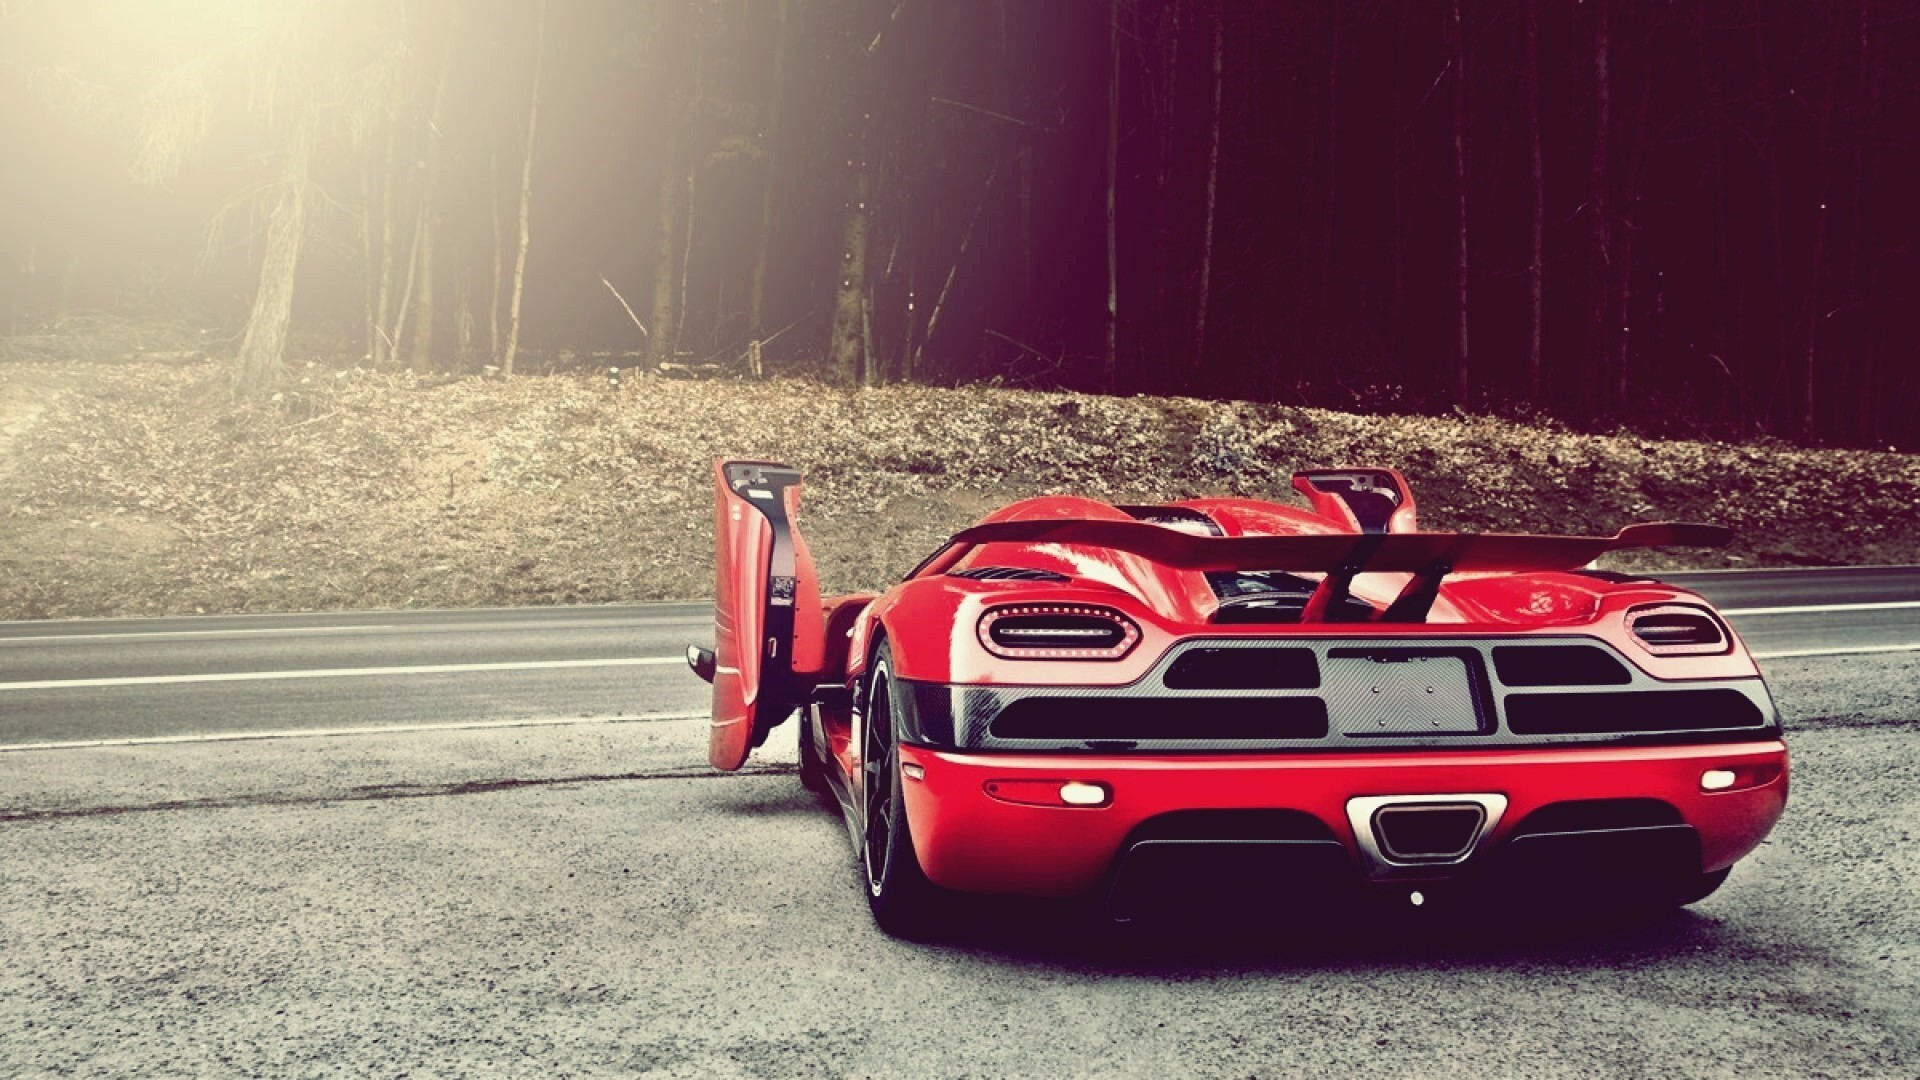 2013 Koenigsegg Agera R HD Racing Car Wallpaper